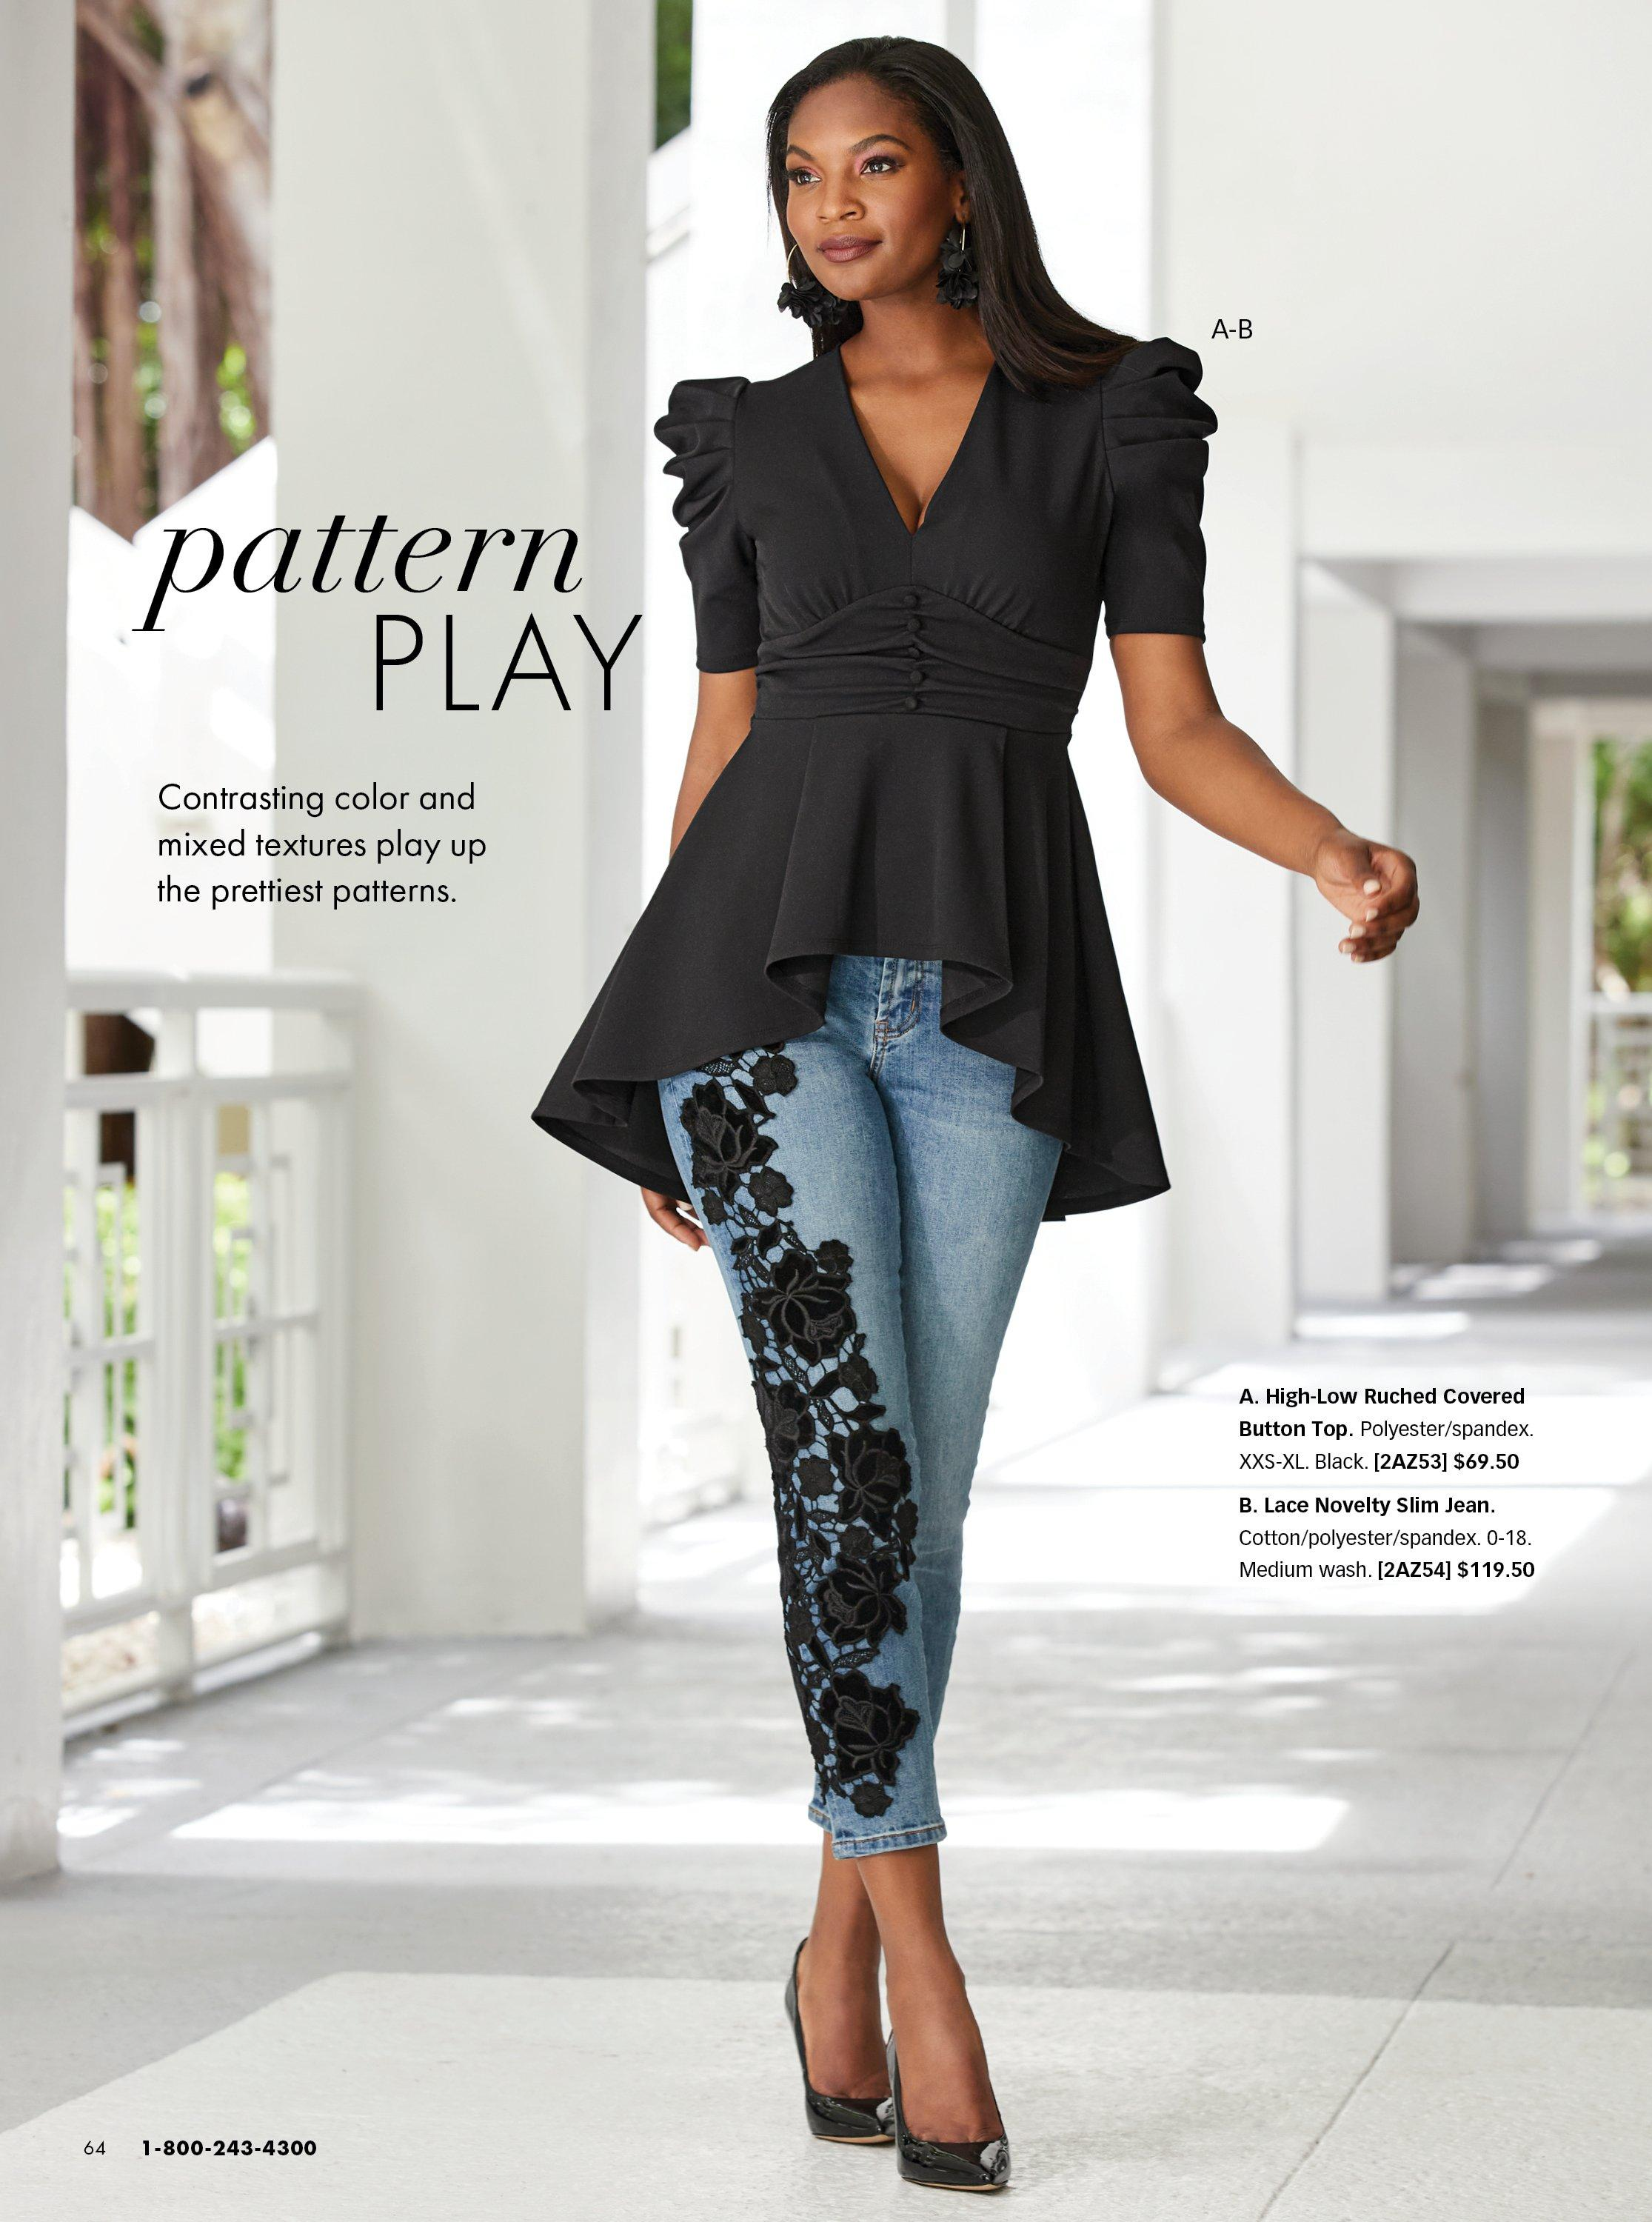 model wearing a black peplum high-low puff sleeve top, jeans with black lace flower embroidery, and black pumps.